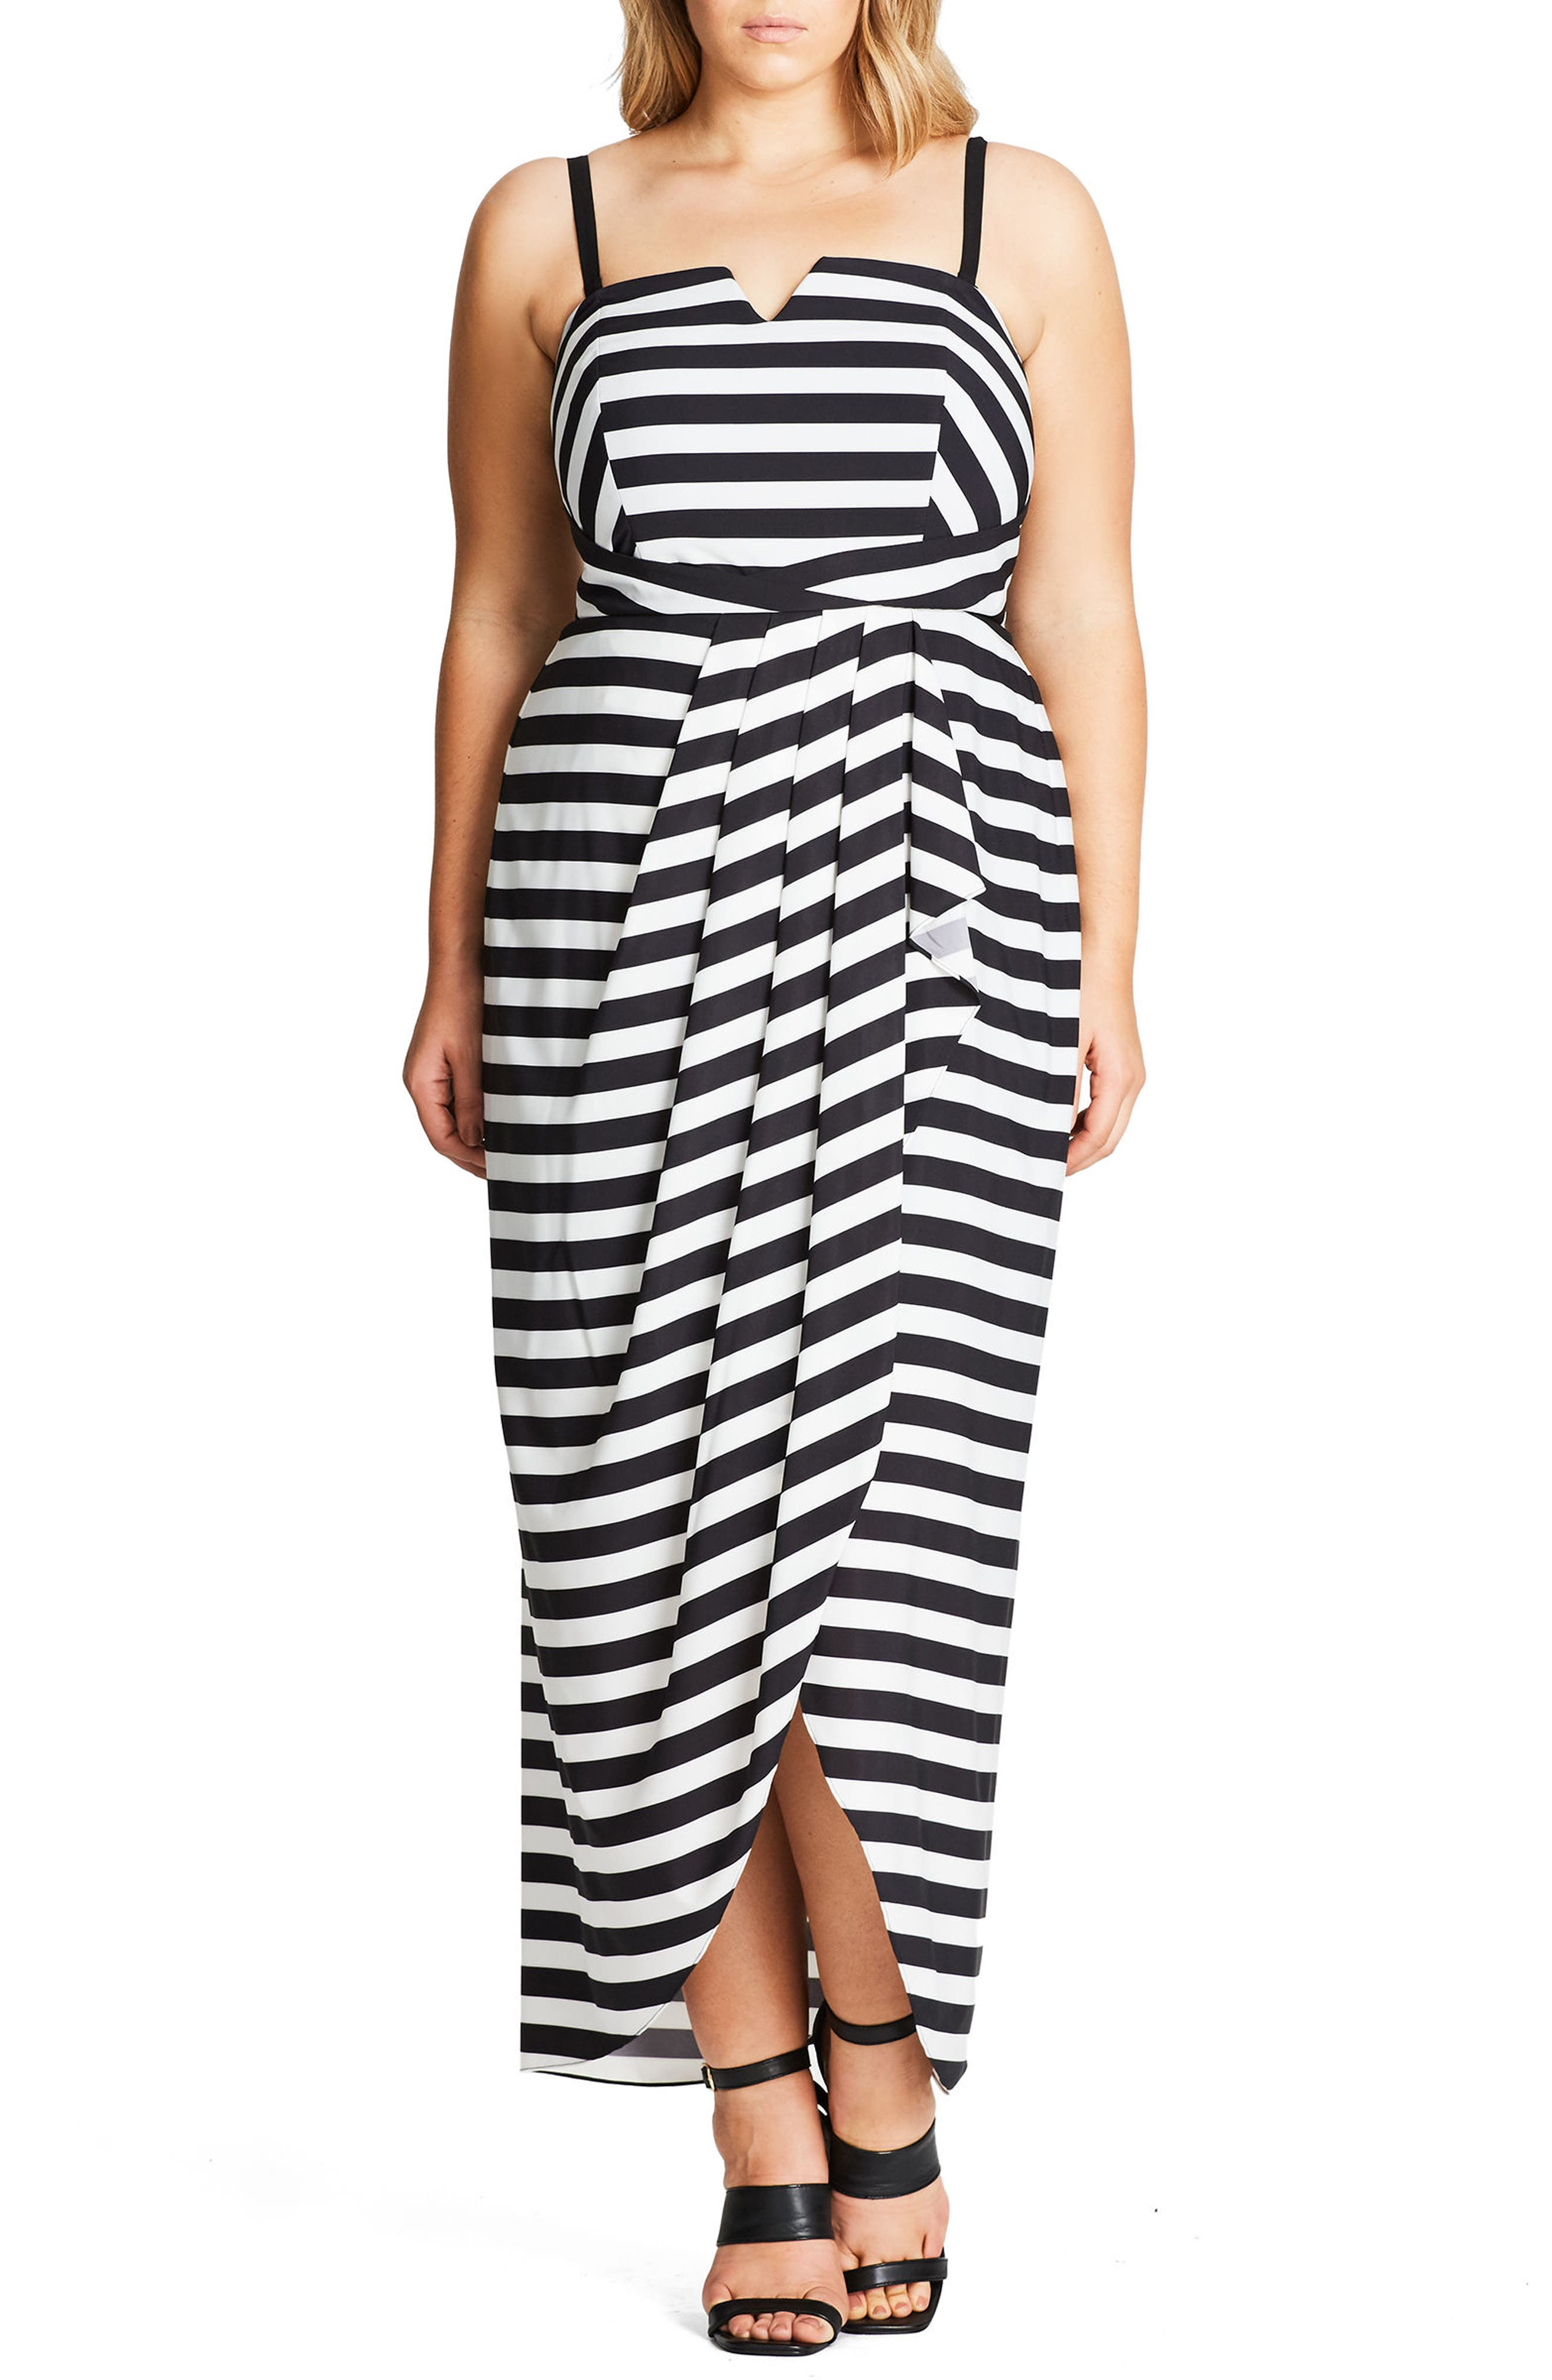 City Chic Fair Lady Convertible Maxi Dress (Plus Size)